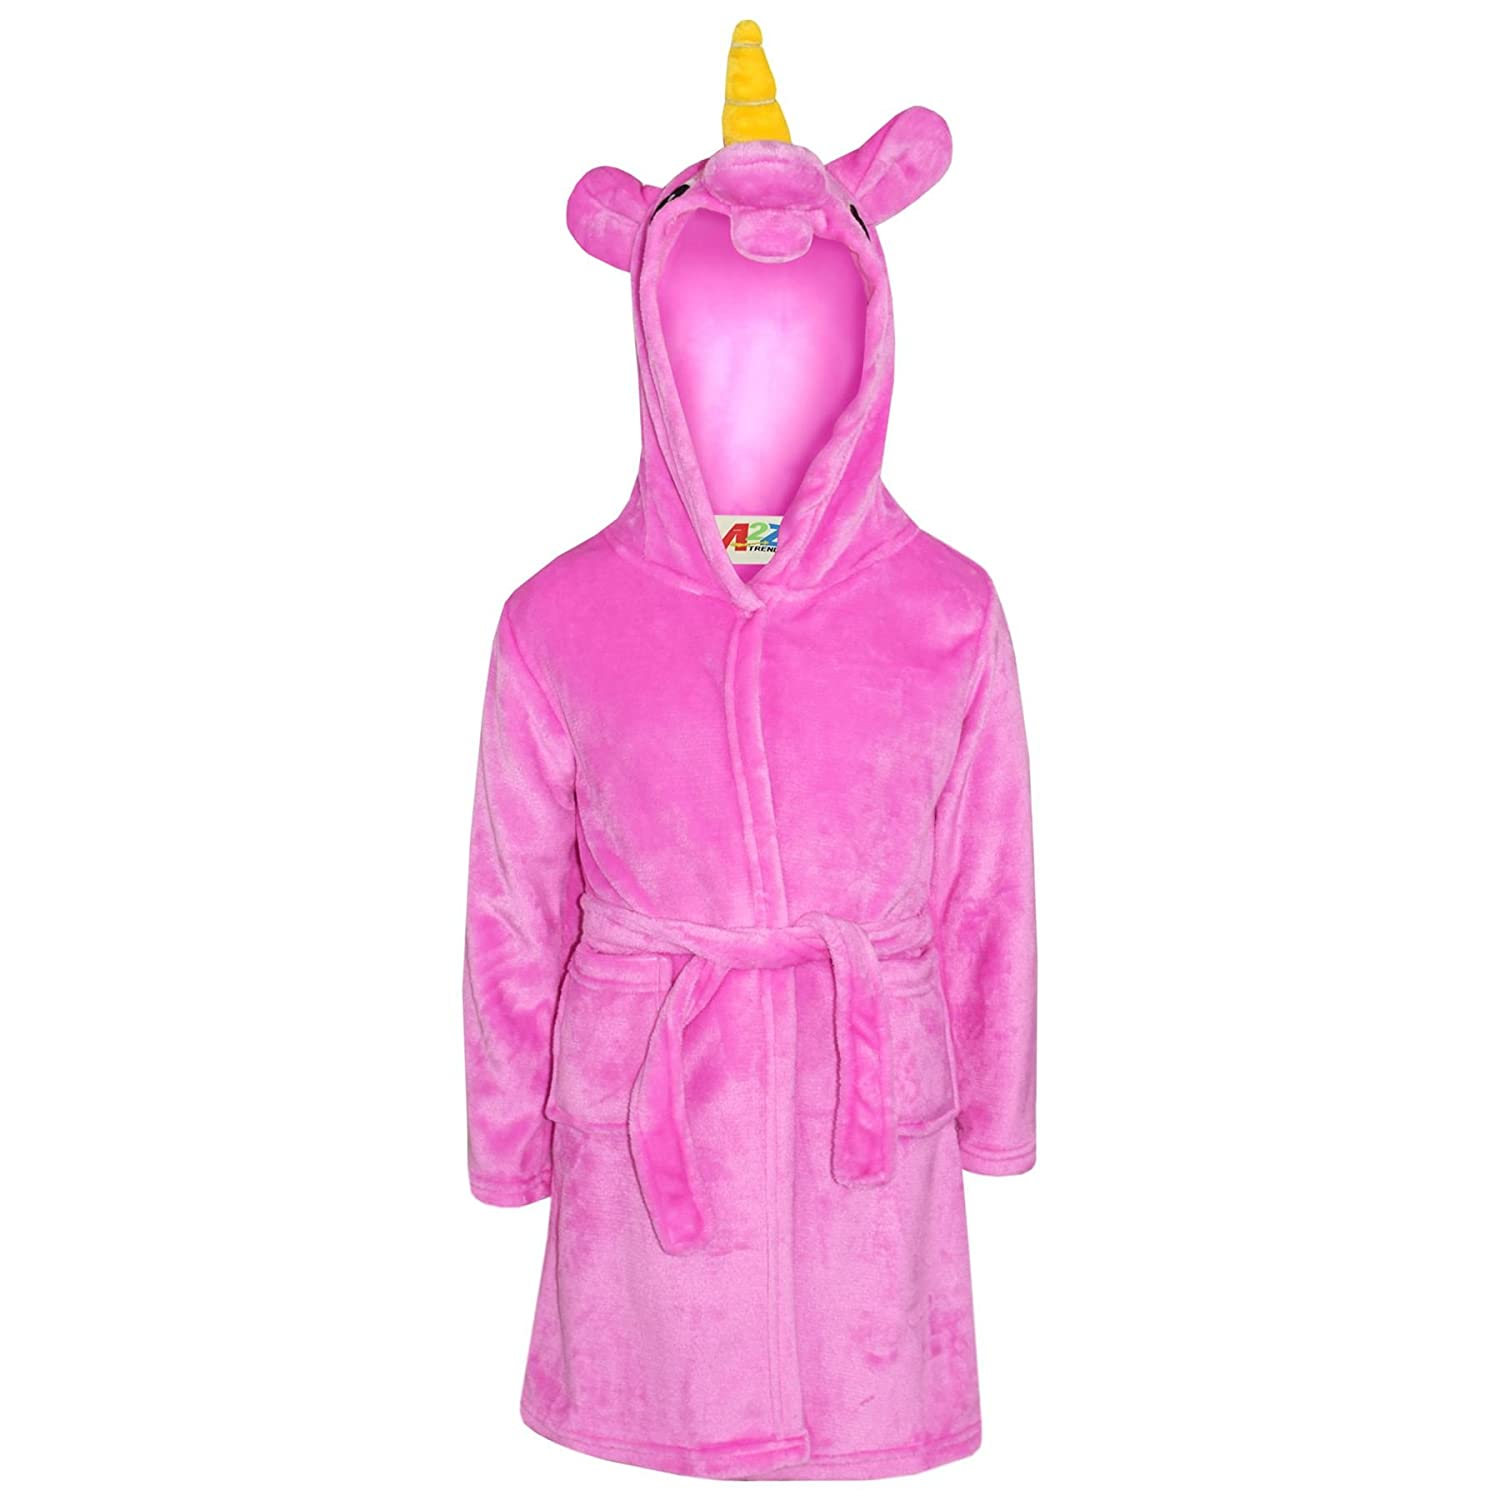 A2Z 4 Kids®®® Kids Girls Boys Bath Robe Animal Unicorn Dressing Gown Fleece Night Lounge Wear